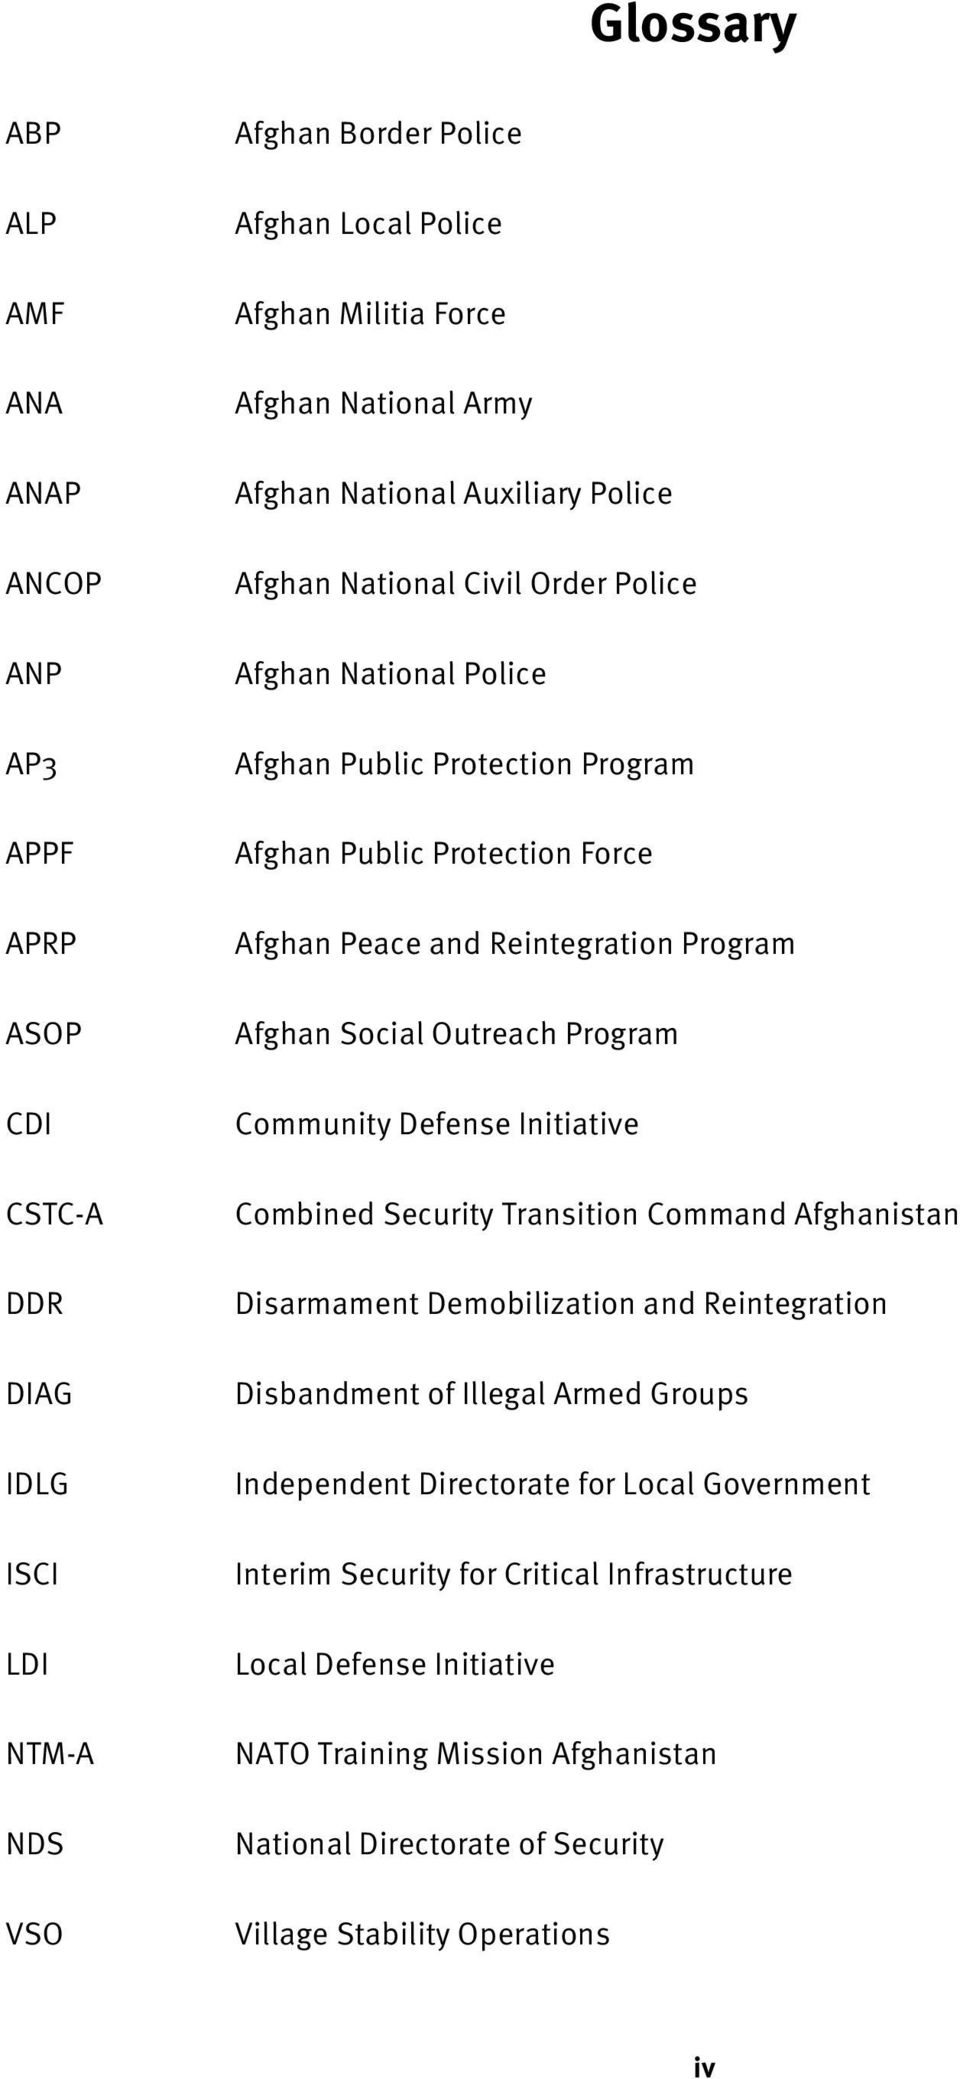 Social Outreach Program Community Defense Initiative Combined Security Transition Command Afghanistan Disarmament Demobilization and Reintegration Disbandment of Illegal Armed Groups Independent